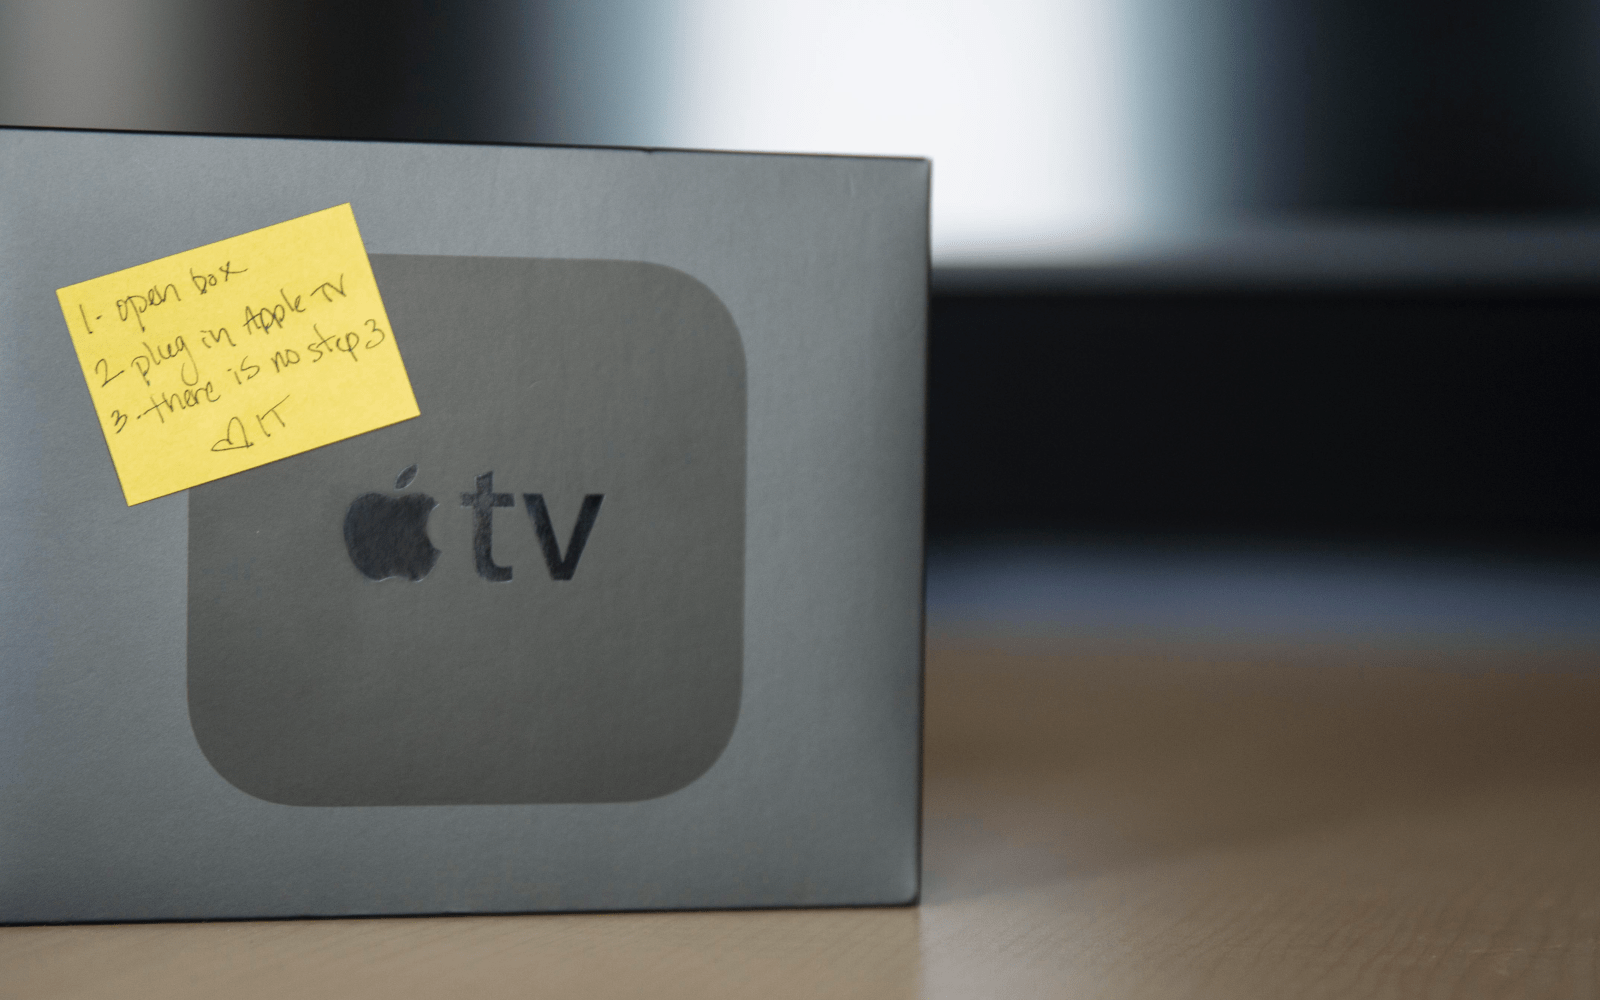 Apple TV is about to get a lot easier to deploy in enterprise as Jamf prepares for tvOS 10.2 release